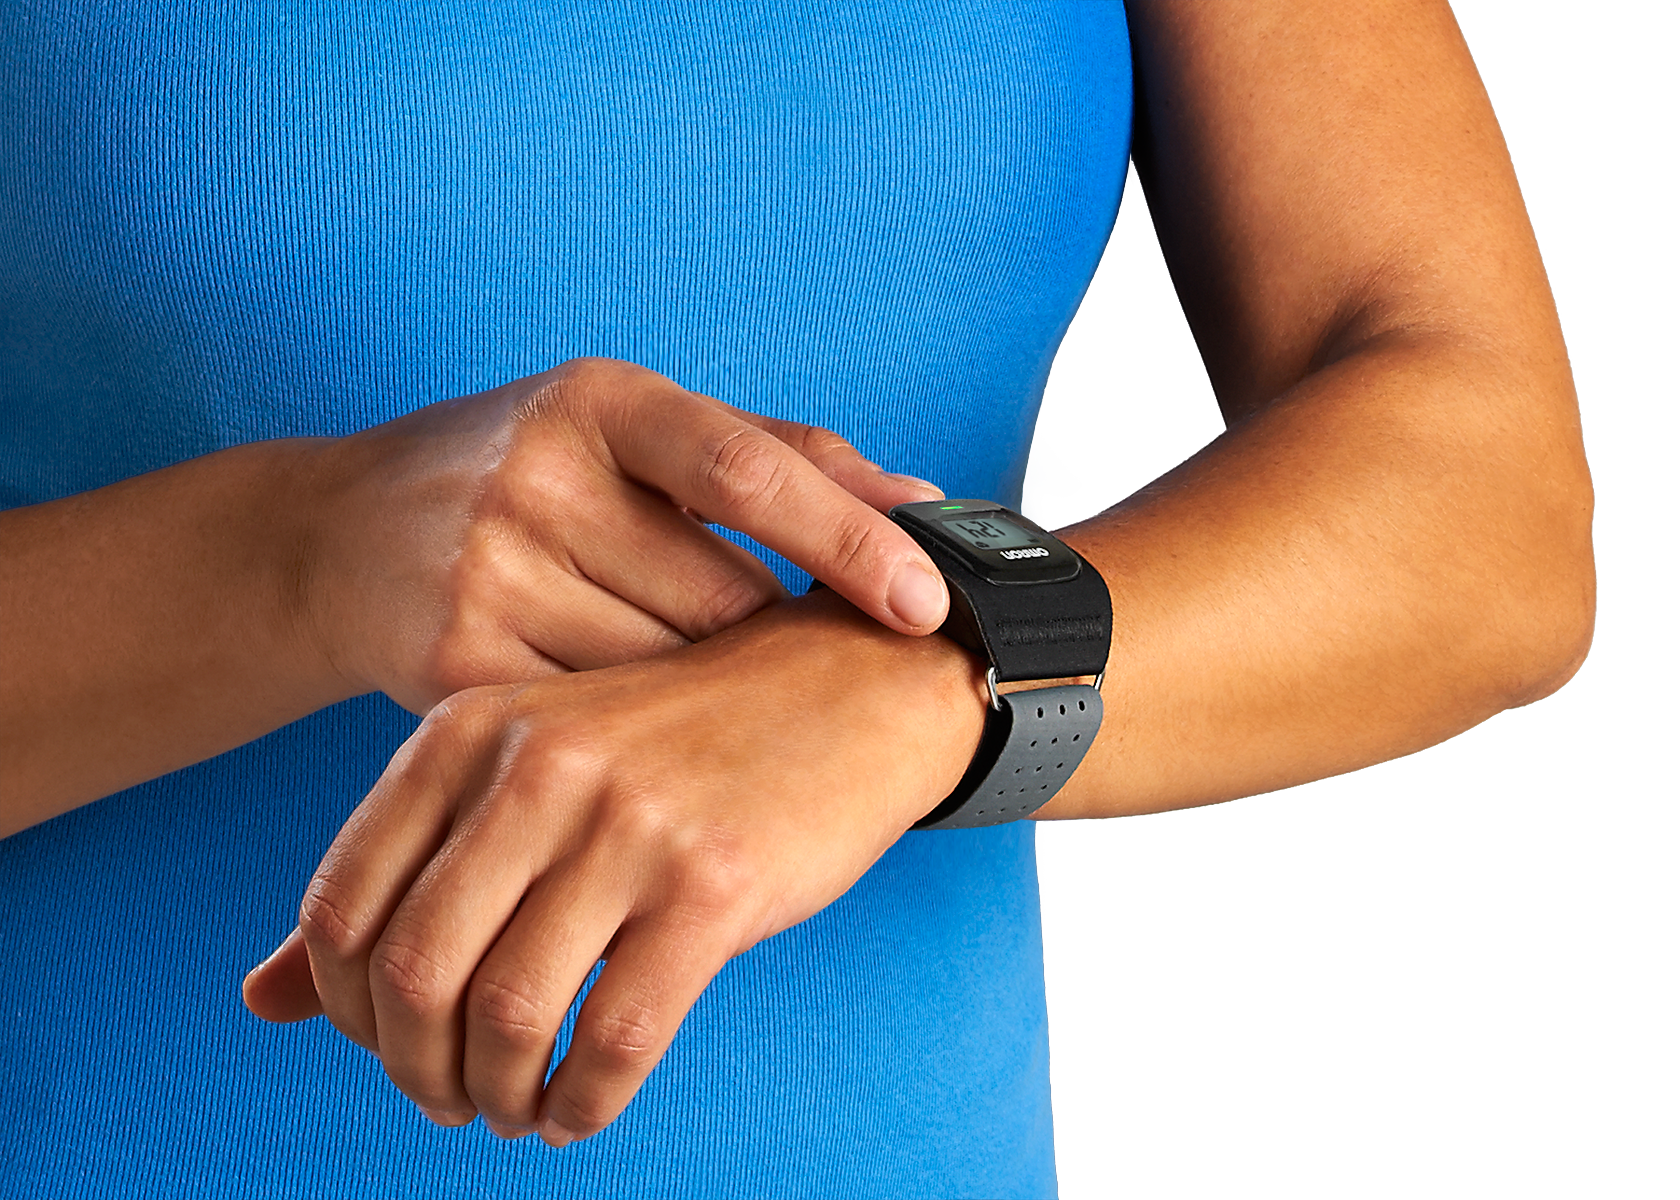 Week 3 in the #iheartOmron Fitness Challenge: The Omron Heart Rate Monitor